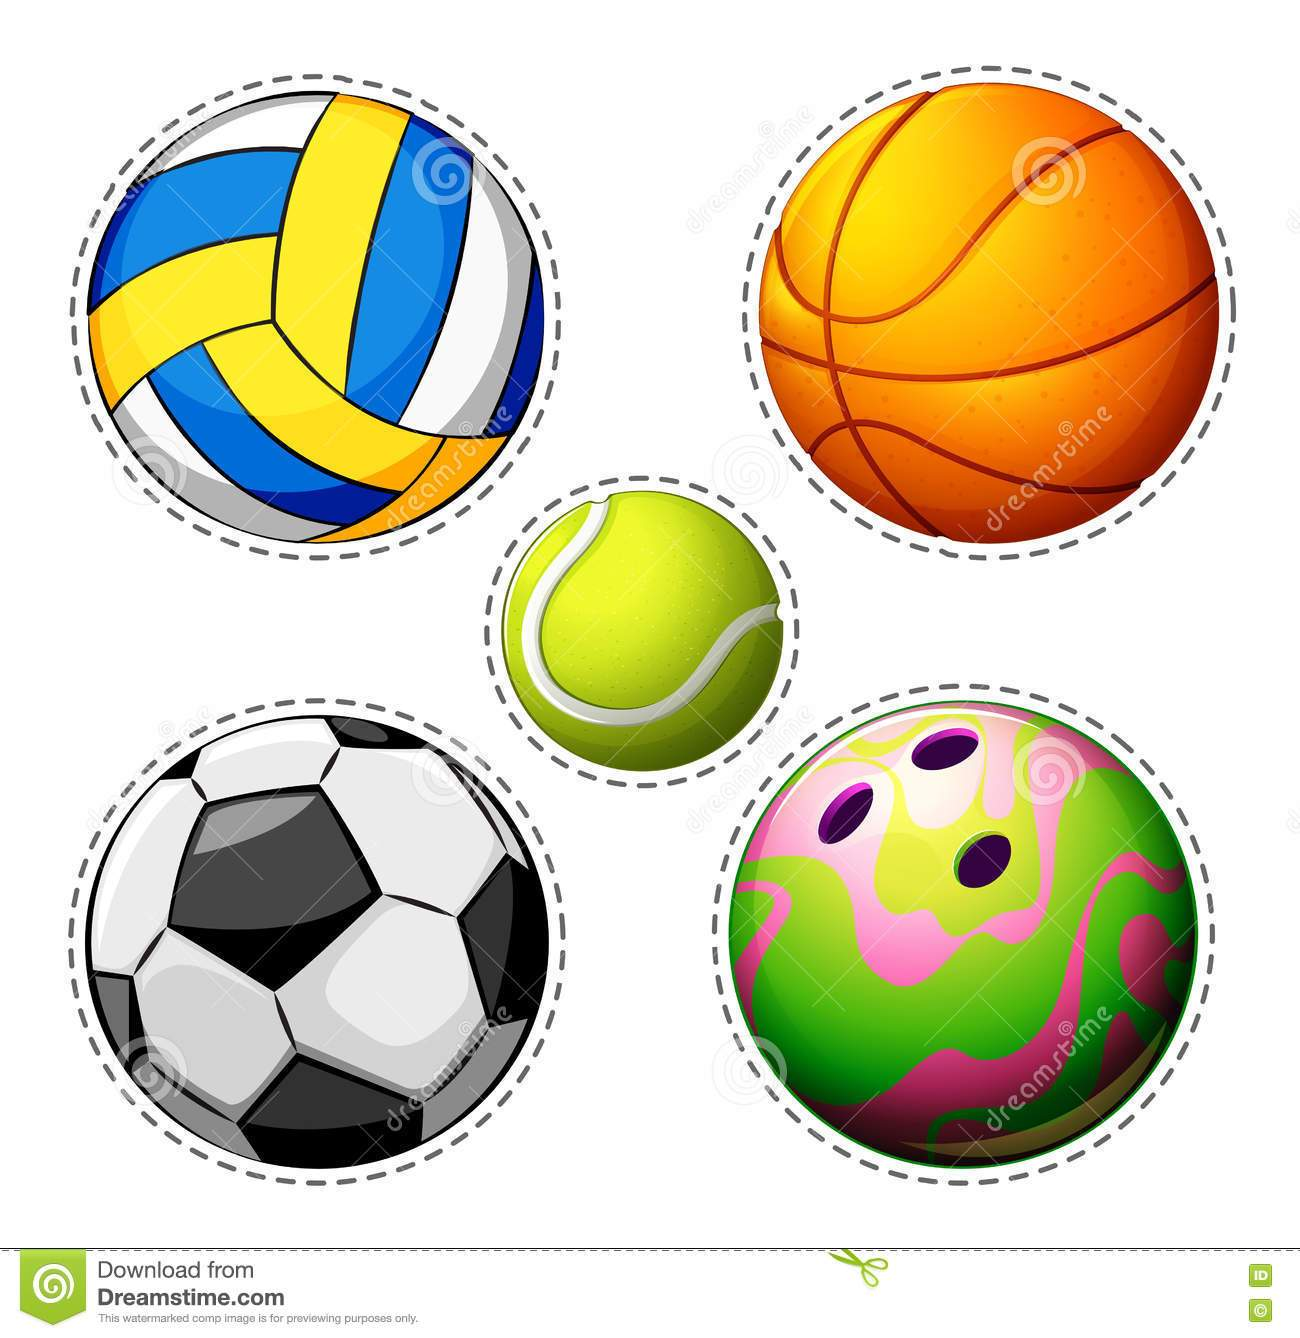 Balls images clipart banner transparent download Different types of balls clipart 8 » Clipart Portal banner transparent download